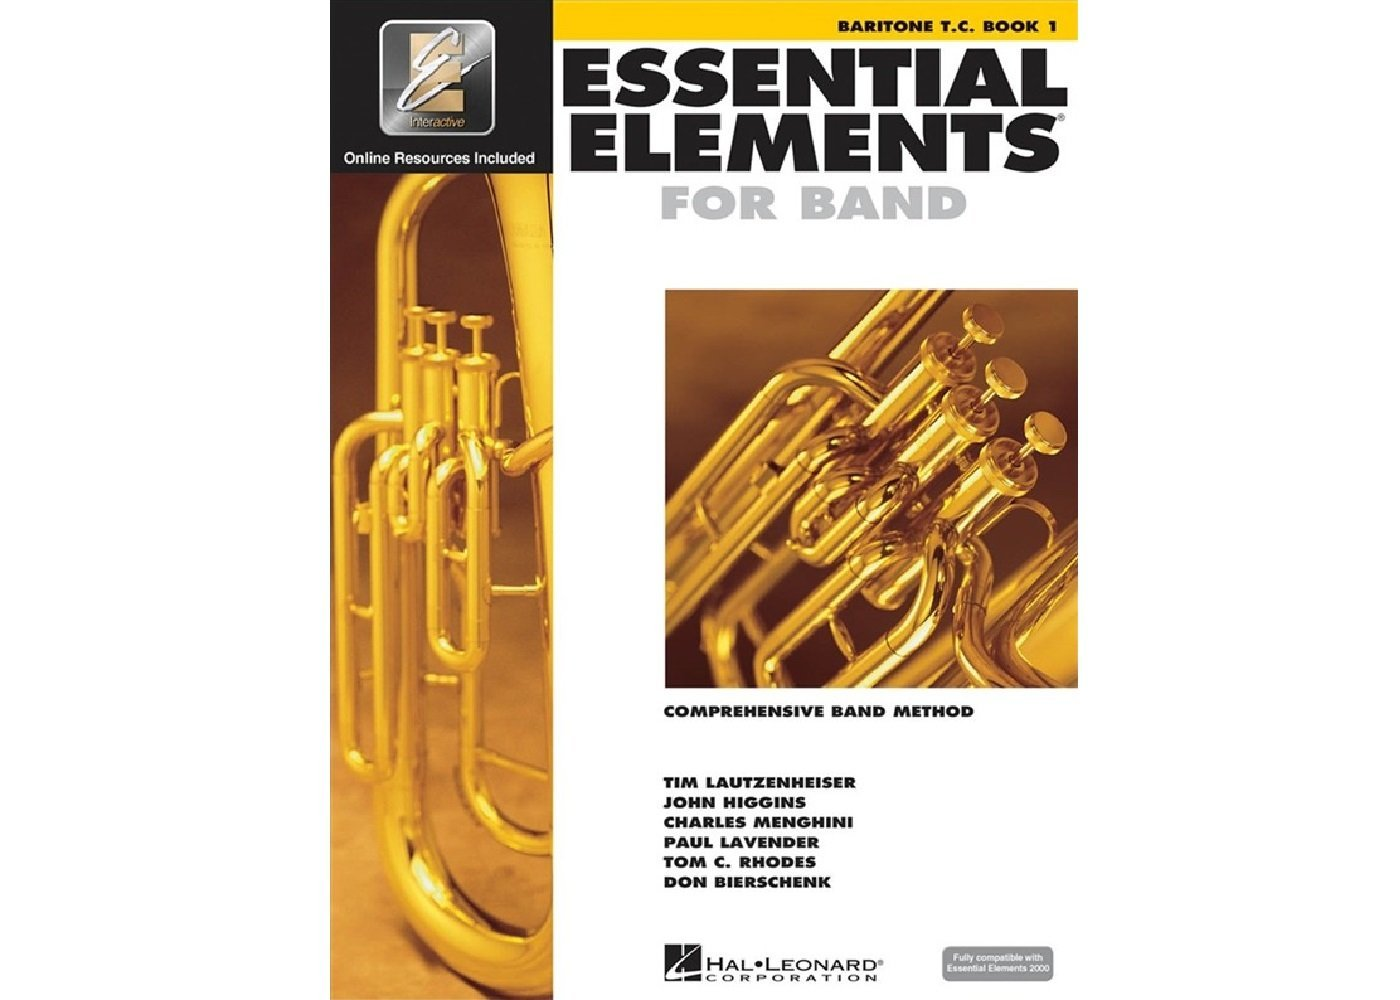 Essential Elements for Band TC Baritone book 1